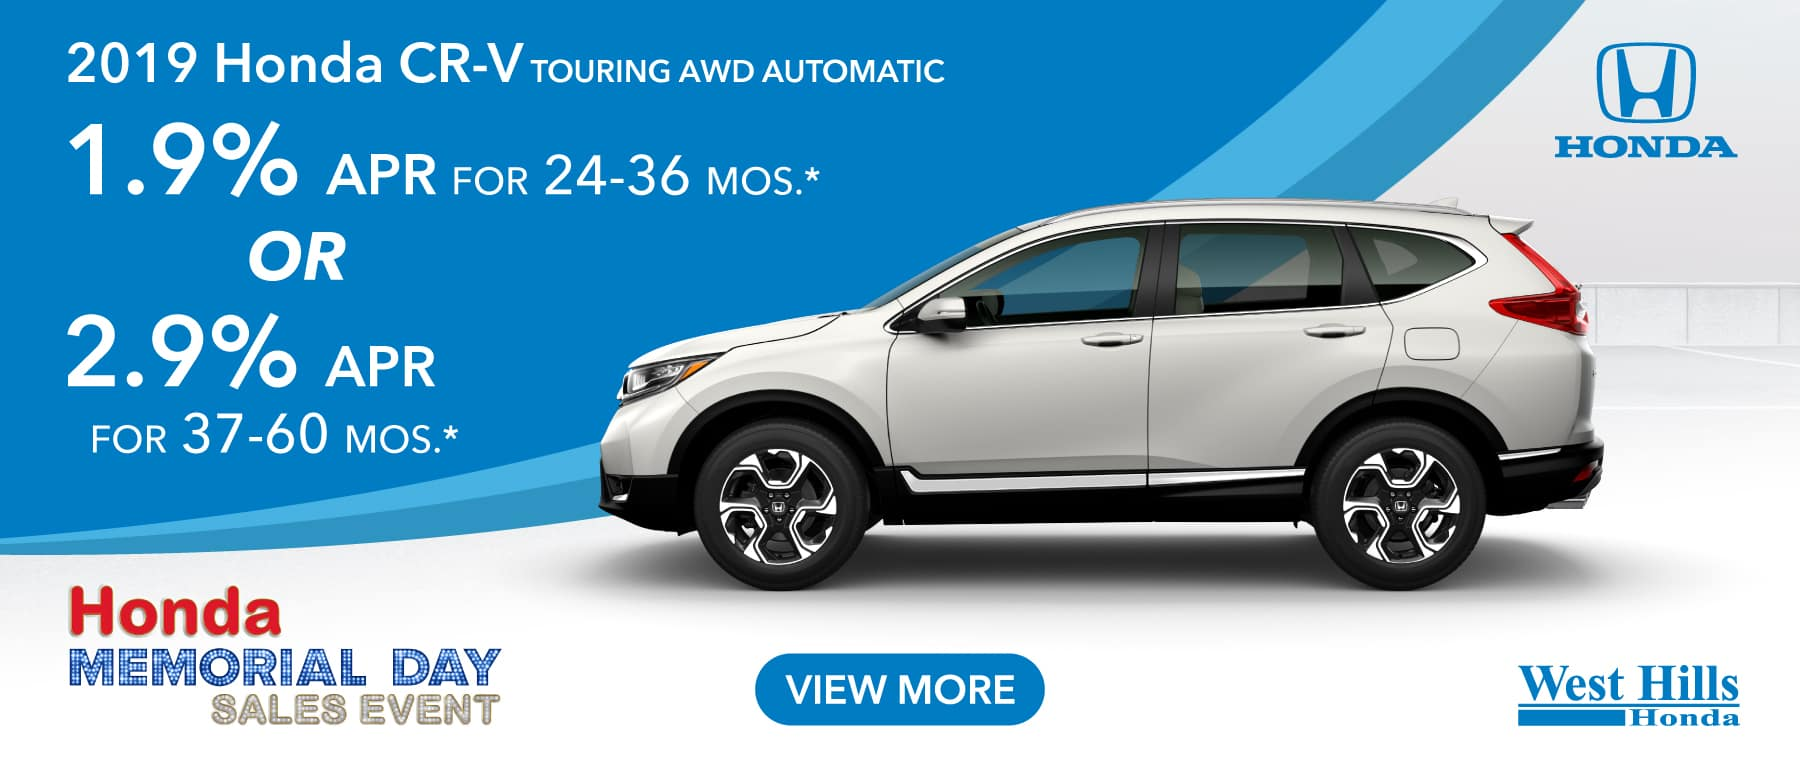 2019 Honda CR-V Touring AWD Automatic  1.9% for 24-36 mos. * OR 2.9% for 37-60 mos. *   * Valid on 2019 Honda CR-V Touring AWD Automatic. 1.9% for 24-36 mos. OR 2.9% for 37-60 mos. Valid on VIN: 5J6RW2H97KL000108, JHLRW2H96KX000182. MSRP starting at $35,145. No Security deposit required. Subject to credit approval. 36 monthly payments required. Residency restrictions apply. Not all buyers will qualify. Down payment and monthly payment may vary. Excludes state and local taxes, tags, registration and title, insurance and dealer charges. A negotiable dealer documentary service fee of up to $150 may be added to the sale price or capitalized cost. Offer expires 7/8/2019.